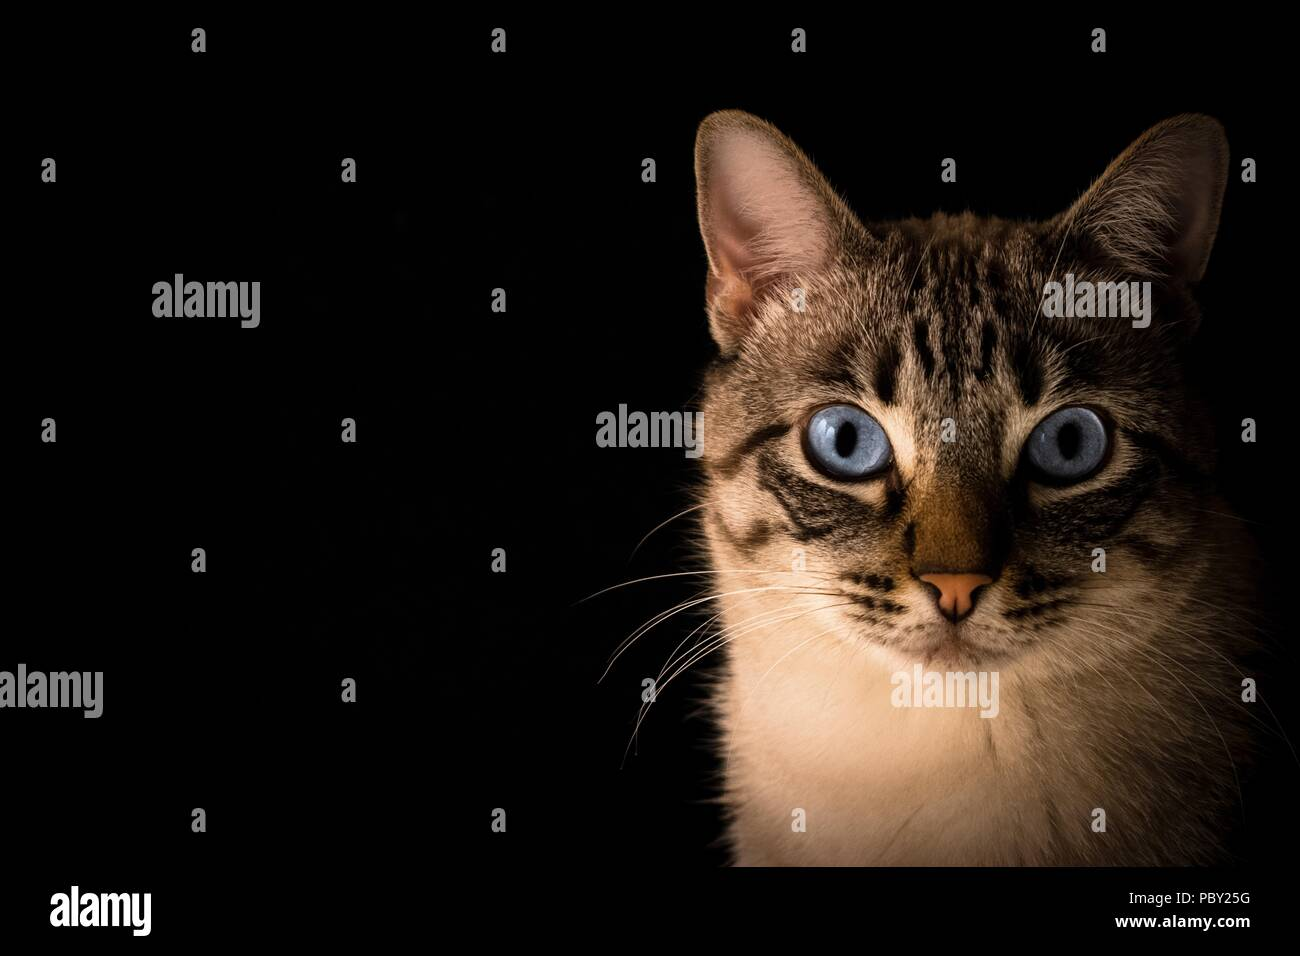 Portrait of a tabby cat on a black background - Stock Image